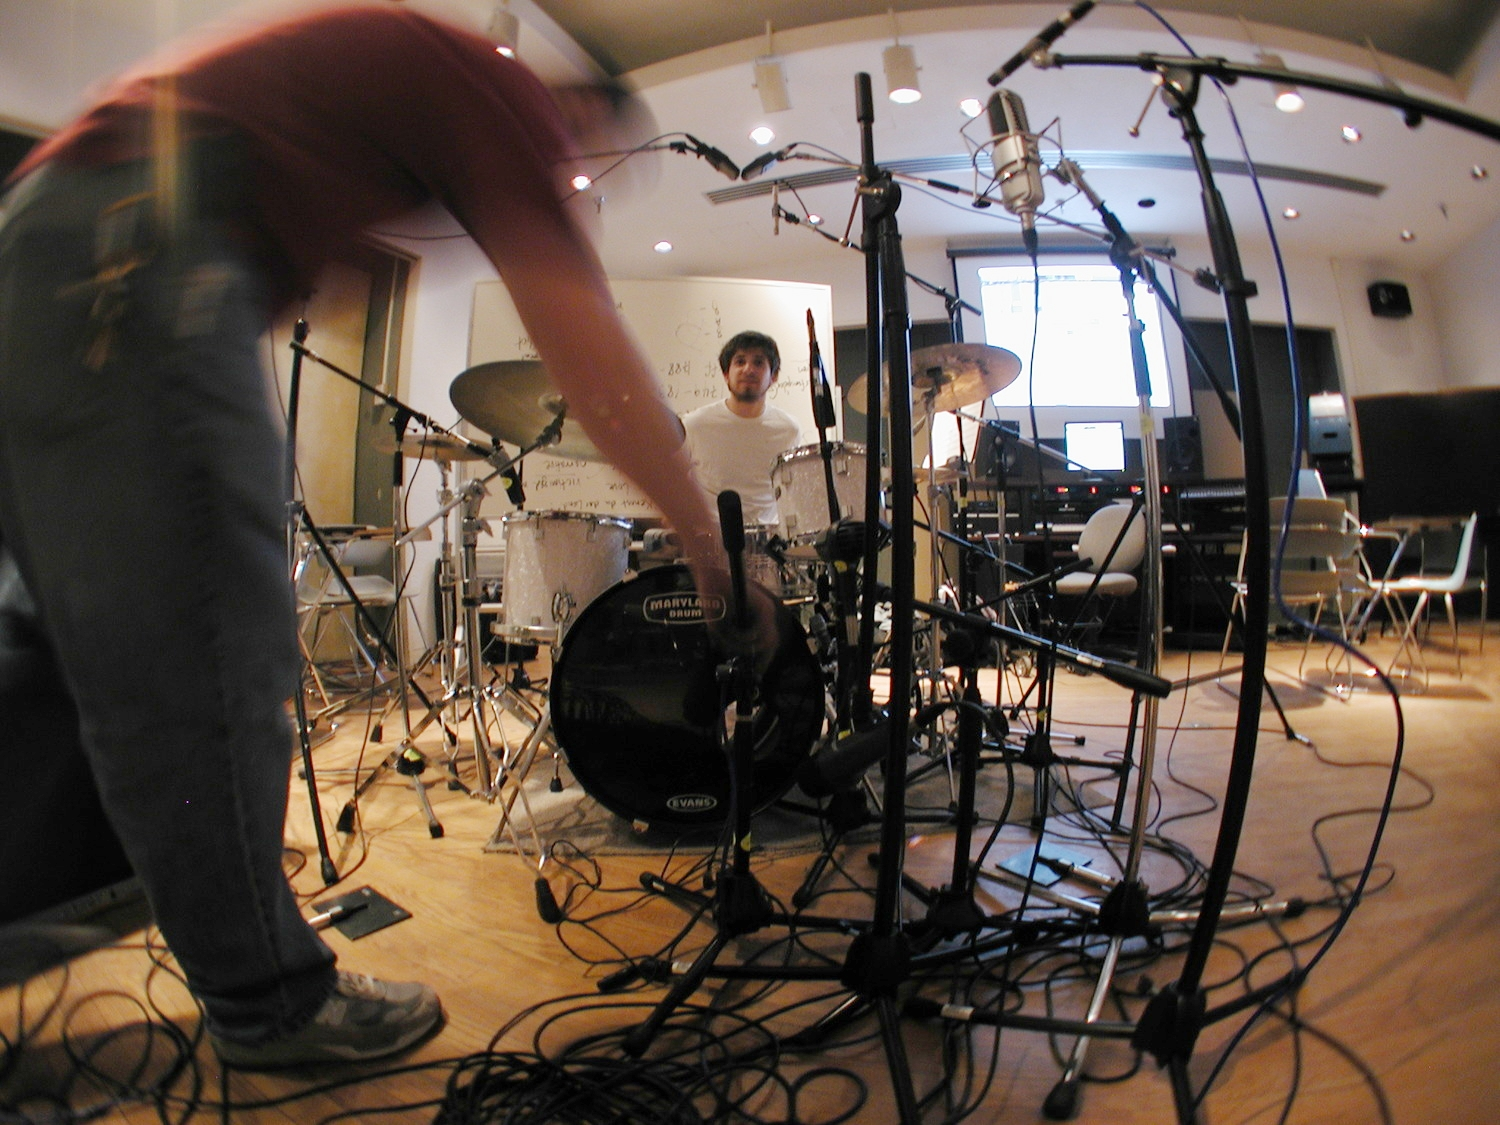 Drum recording in class